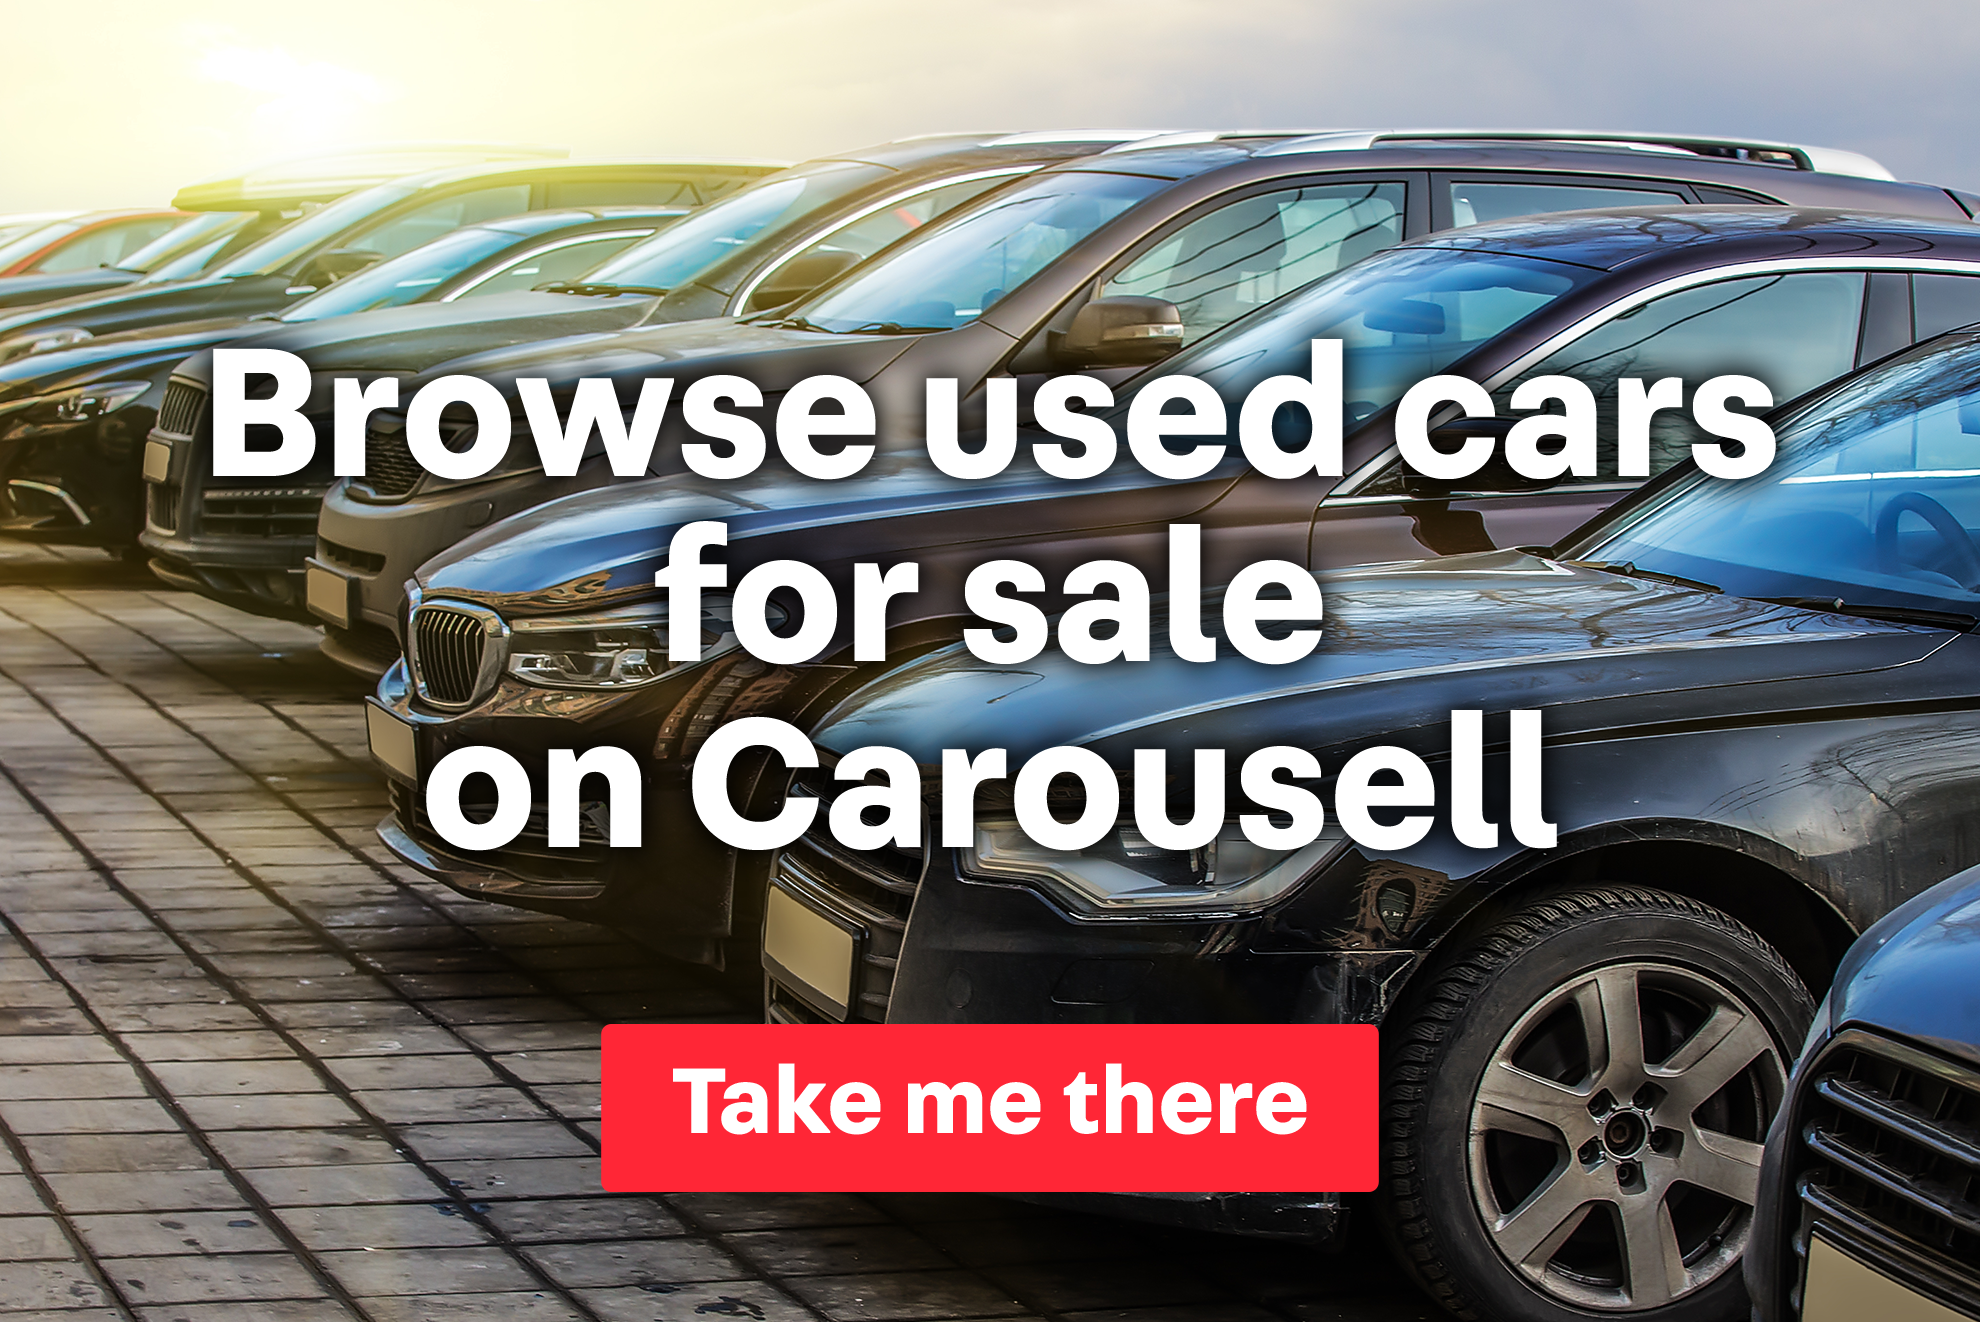 Browse used cars on Carousell